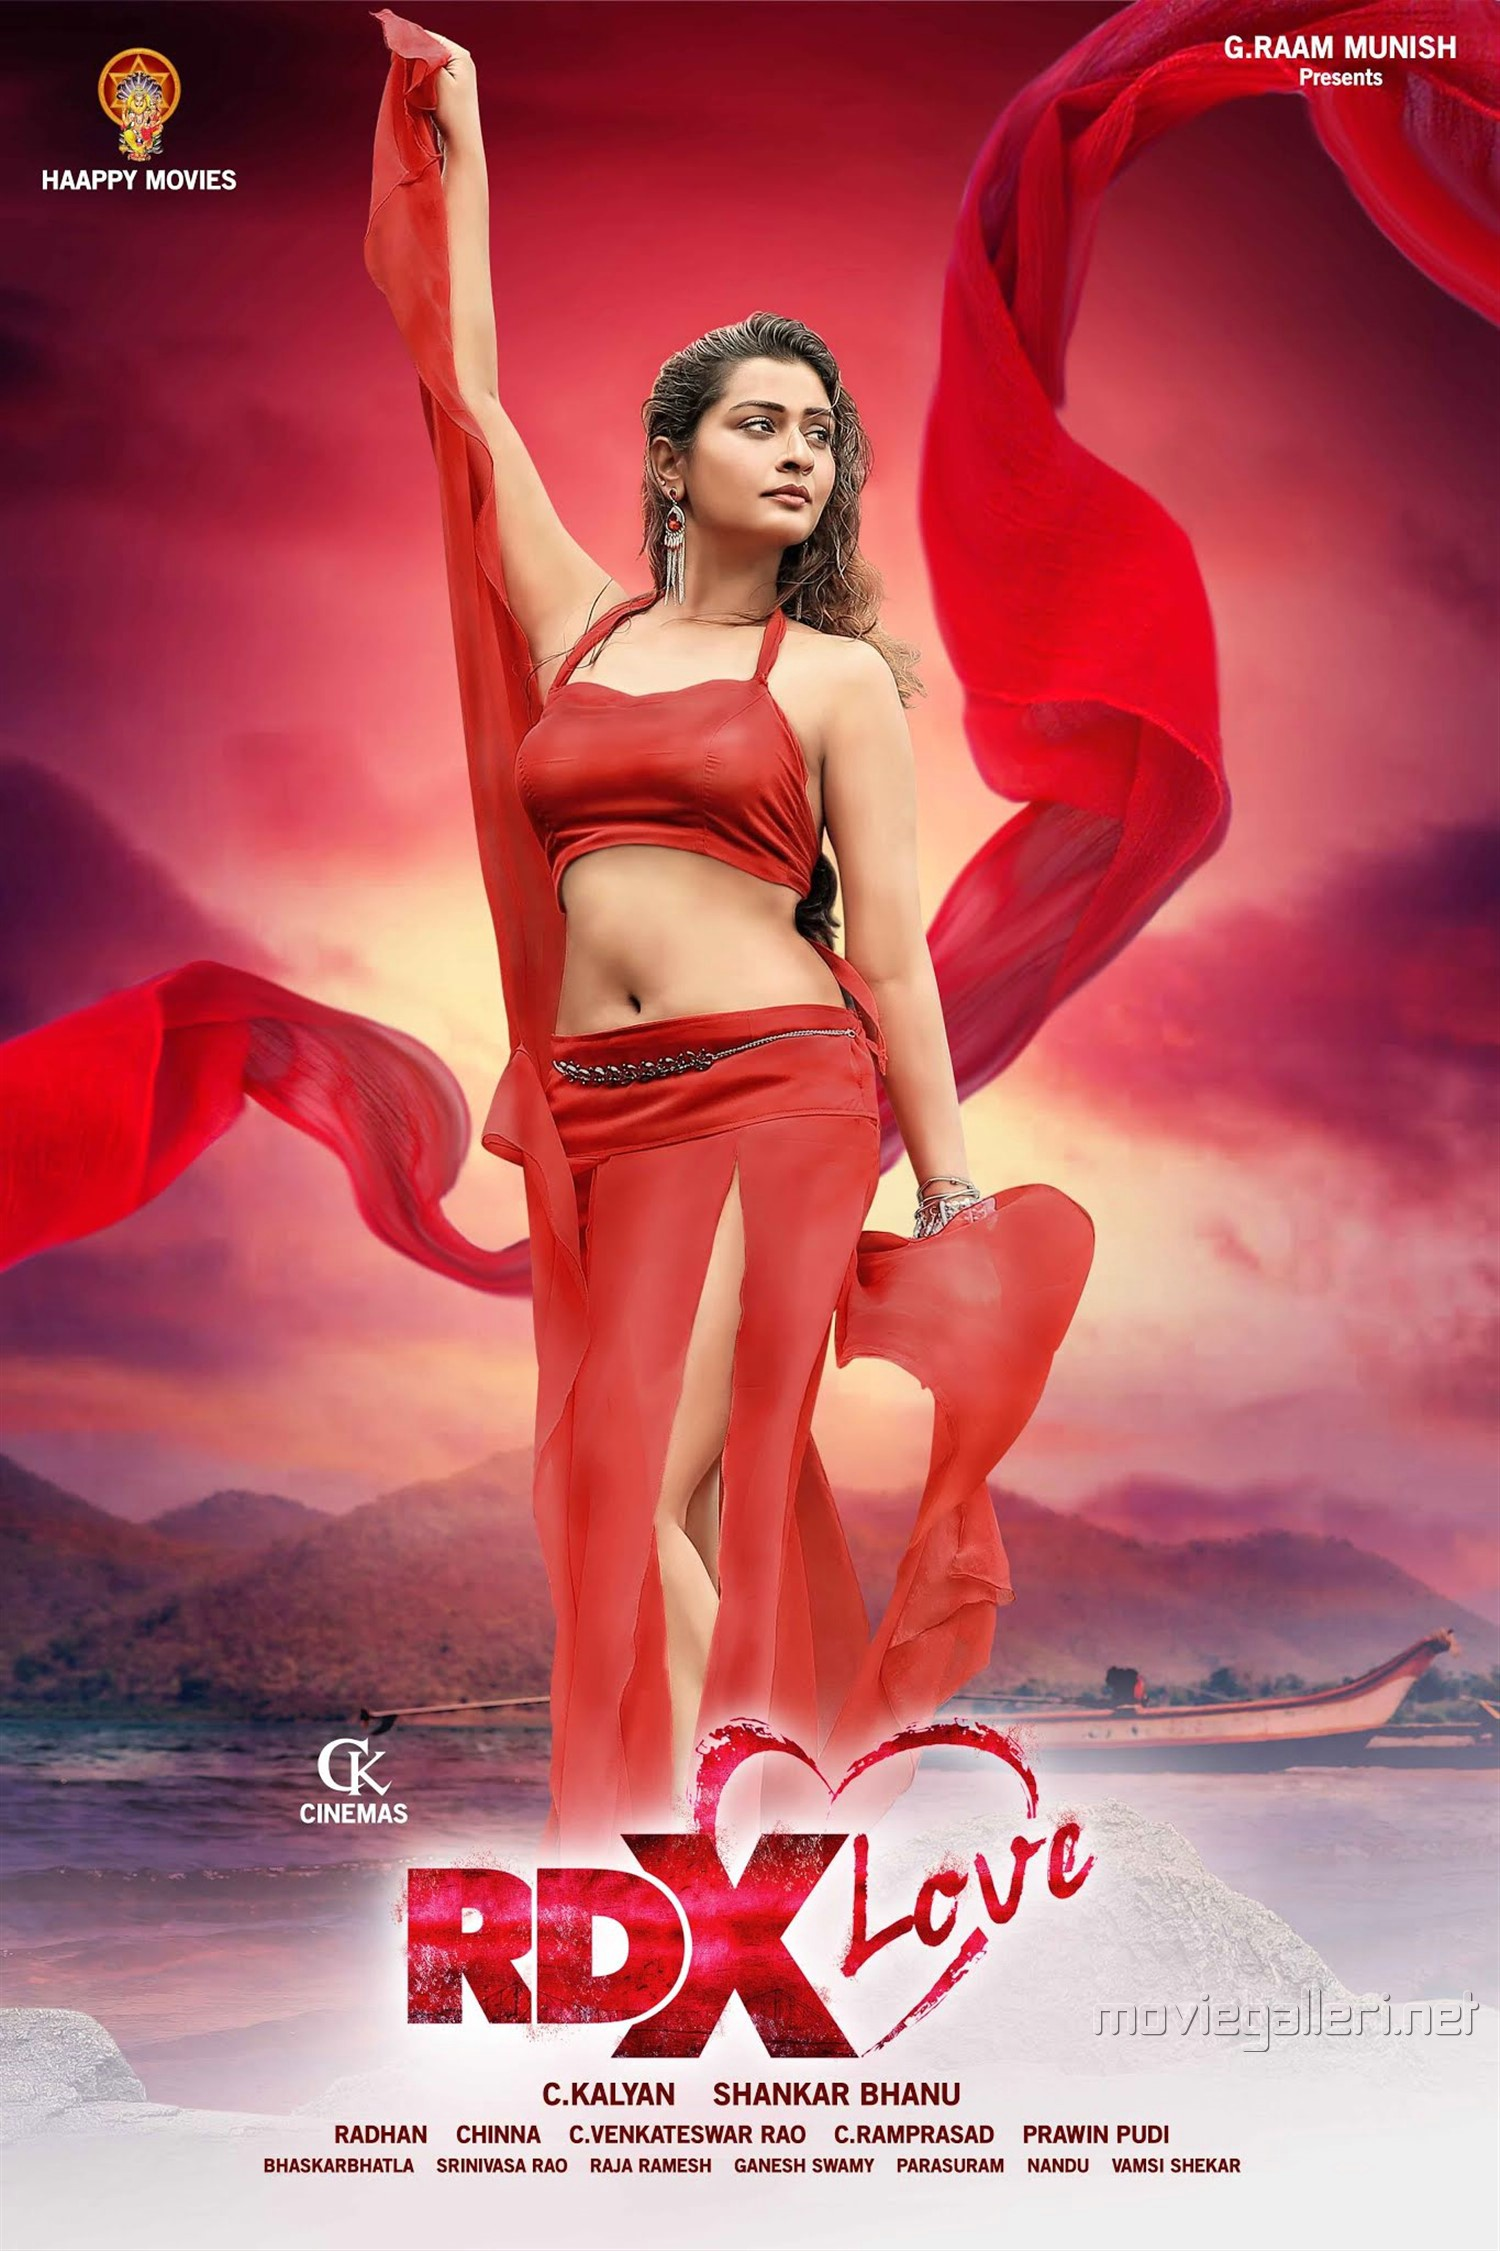 aCTRESS Payal Rajput RDX Love Movie Posters HD